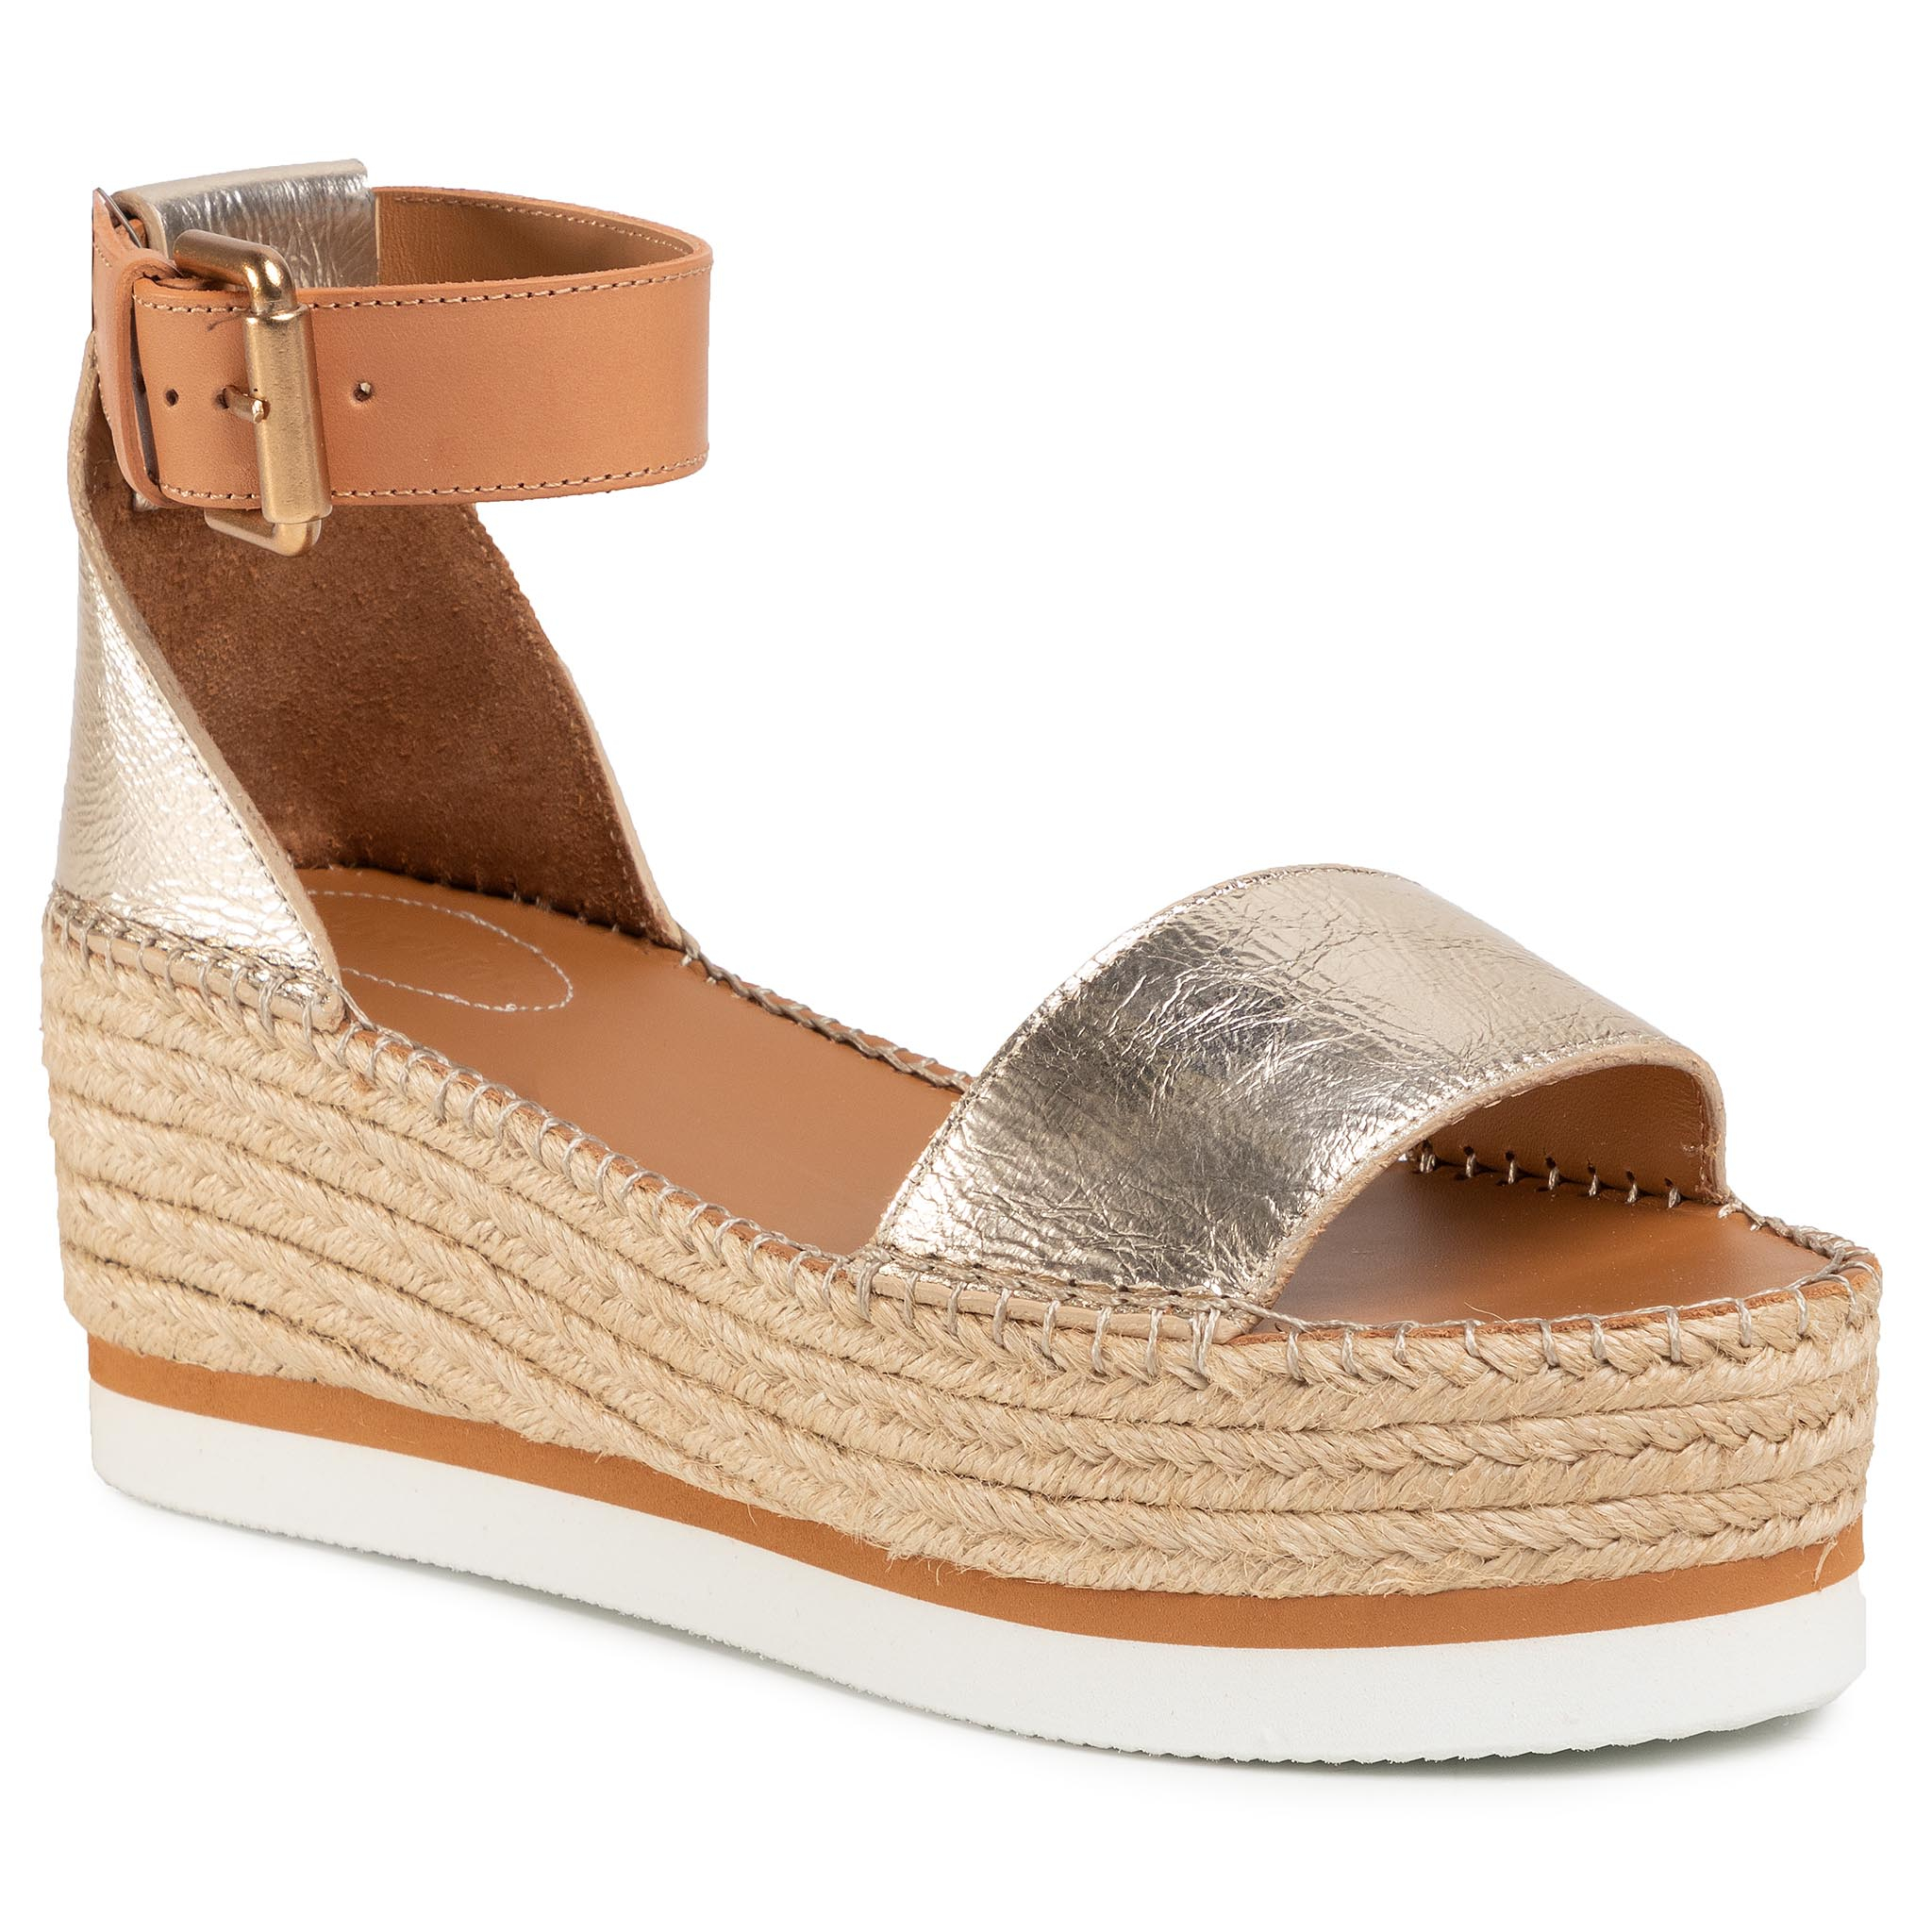 Image of Espadrillas SEE BY CHLOÉ - SB32201A Light Gold 533